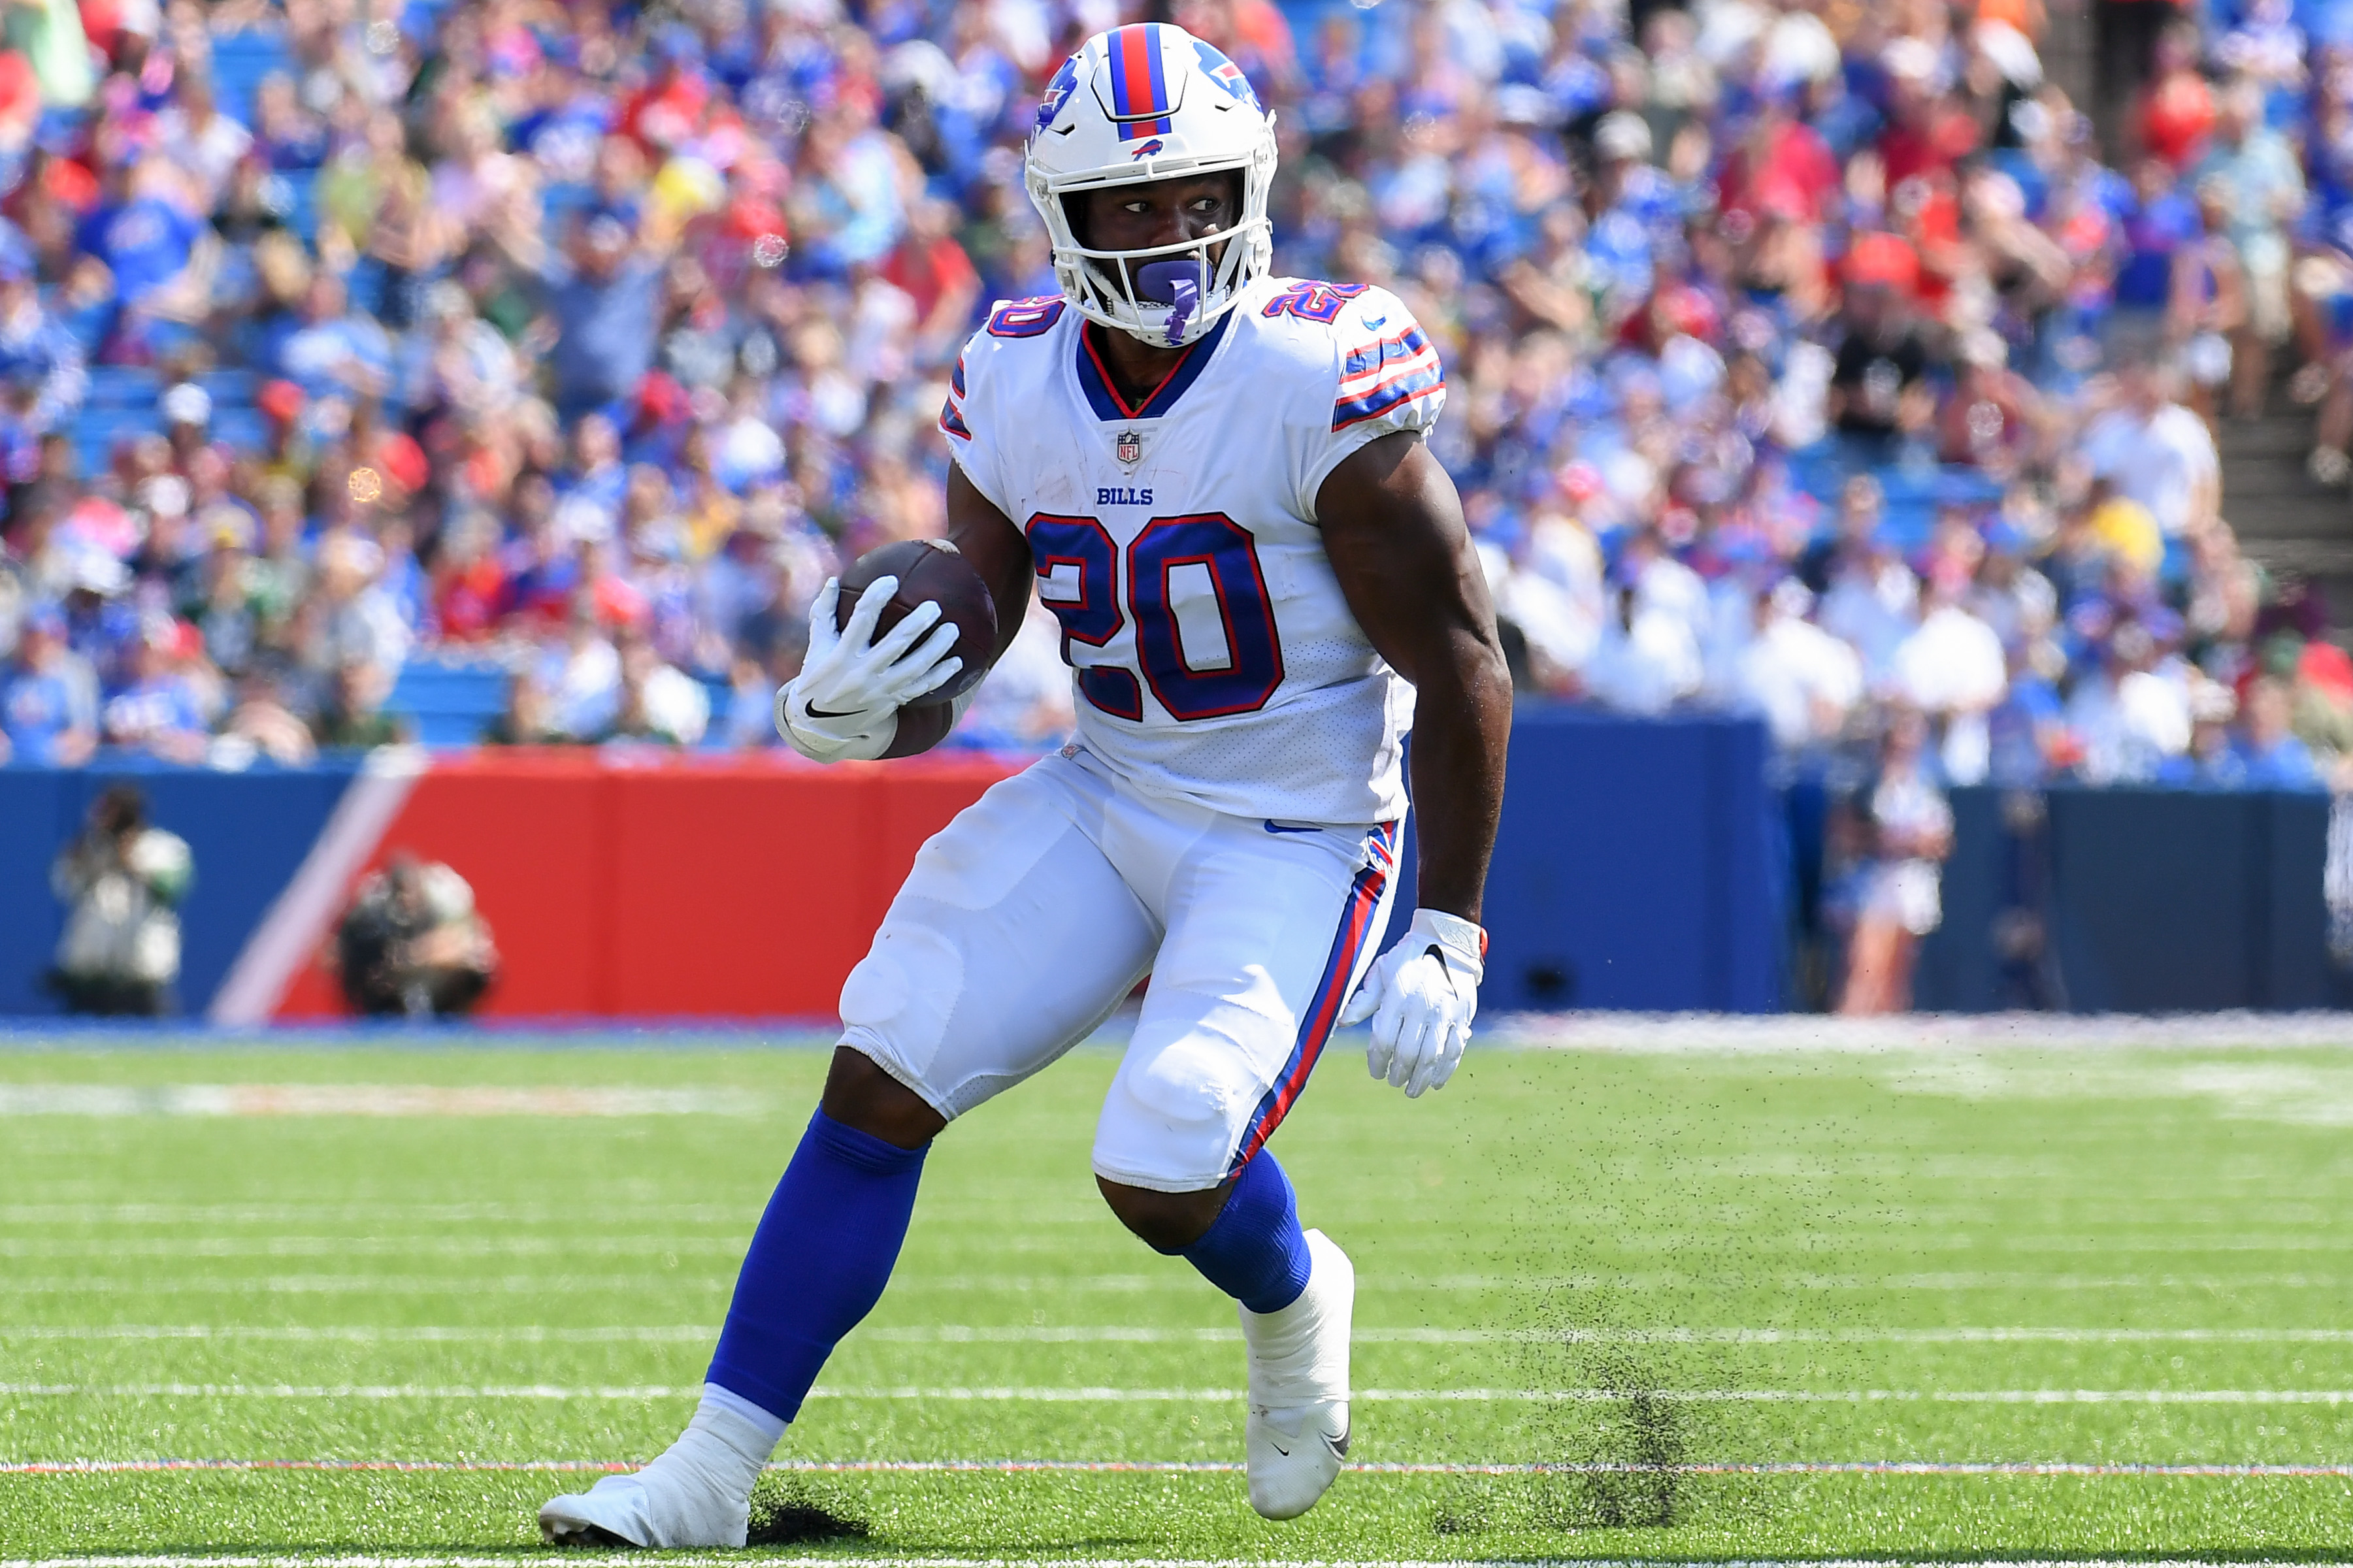 Buffalo Bills running back Zack Moss (20) runs with the ball against the Green Bay Packers during the first half at Highmark Stadium.